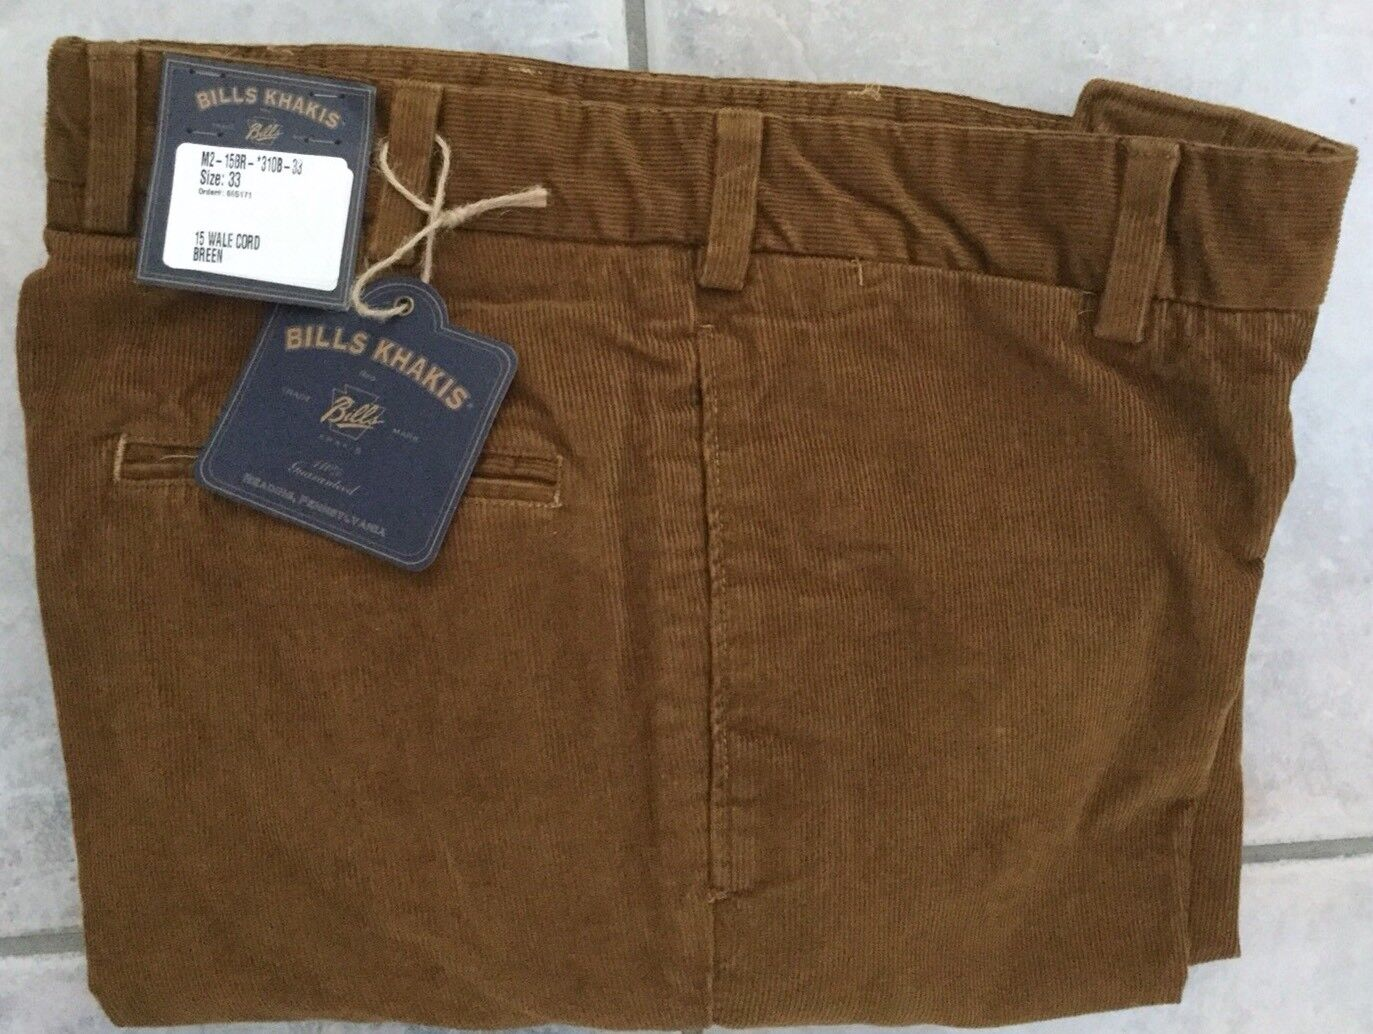 BRAND NEW-Bills khakis M2-15BR SZ 38X32 PLAIN FRONT 15 WALE CORD BREEN MSRP